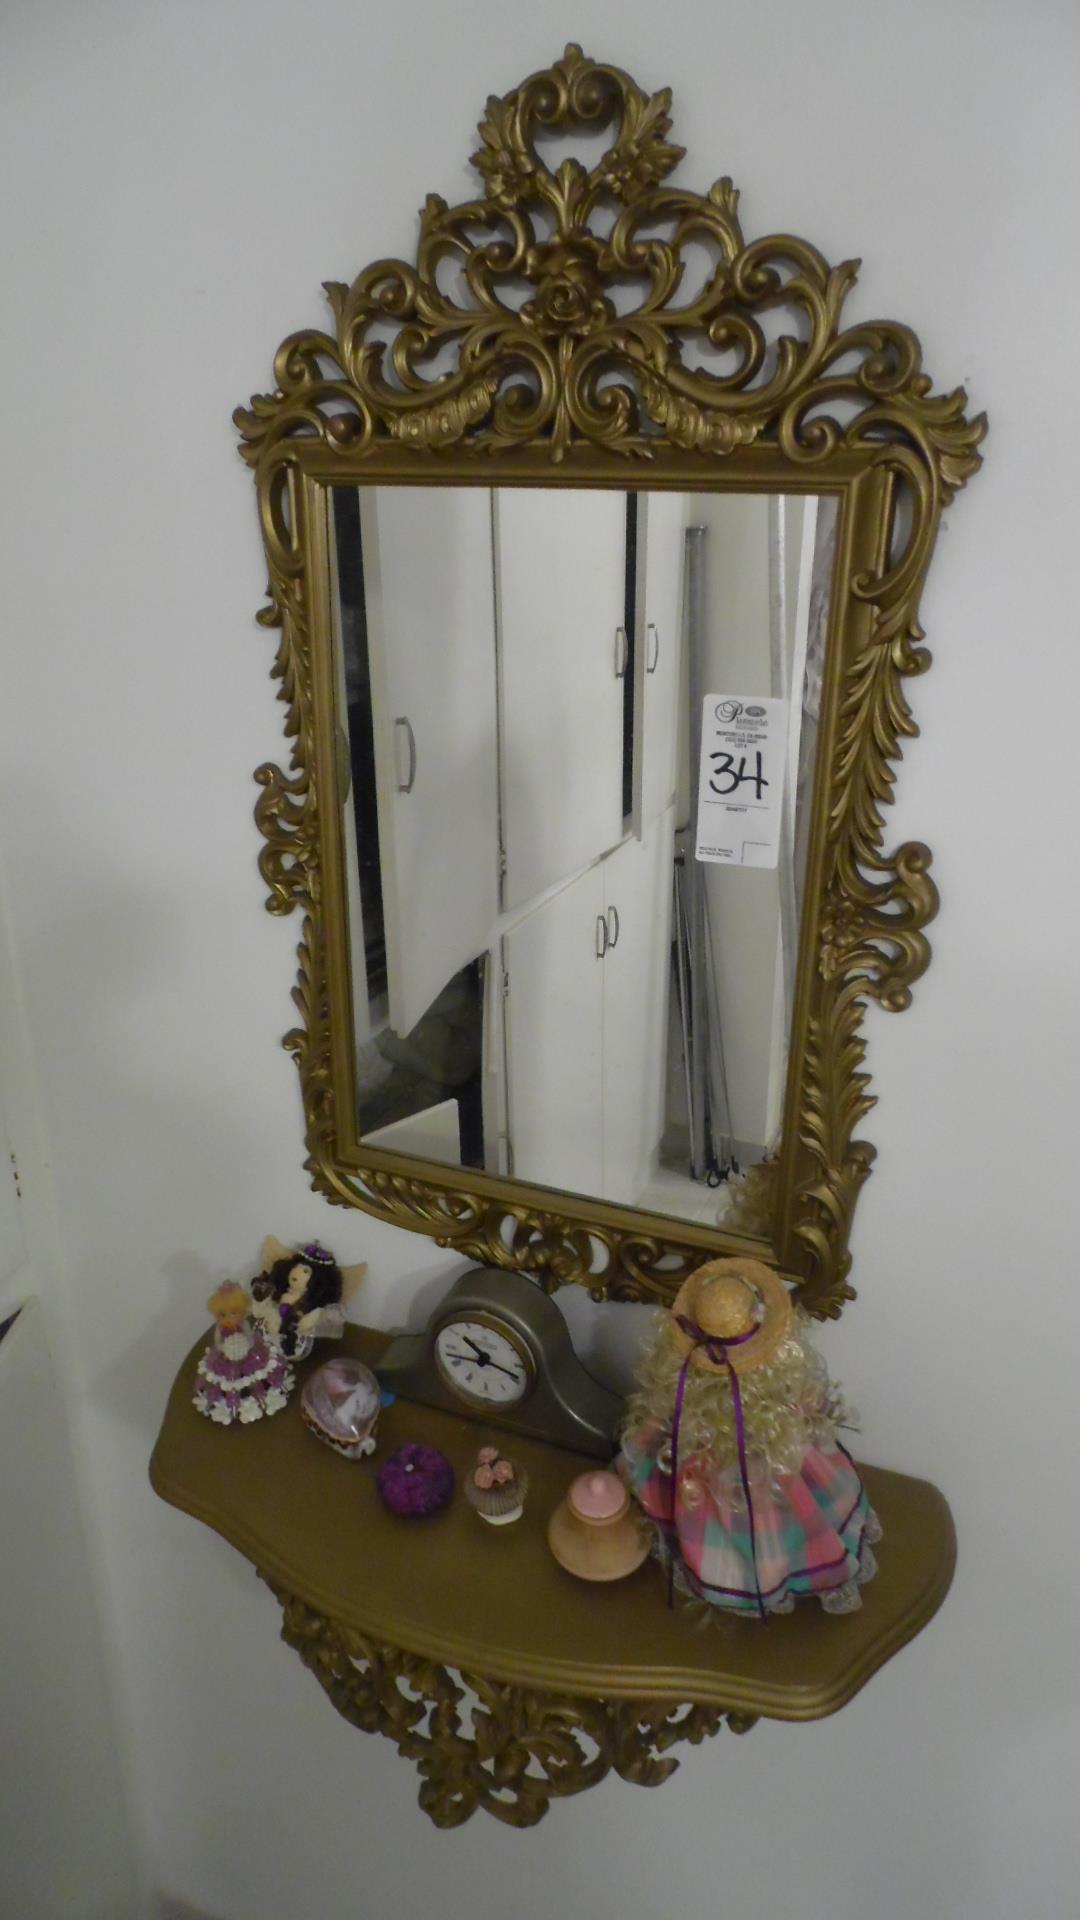 Lot 34 - MIRROR / STAND / FIGURES